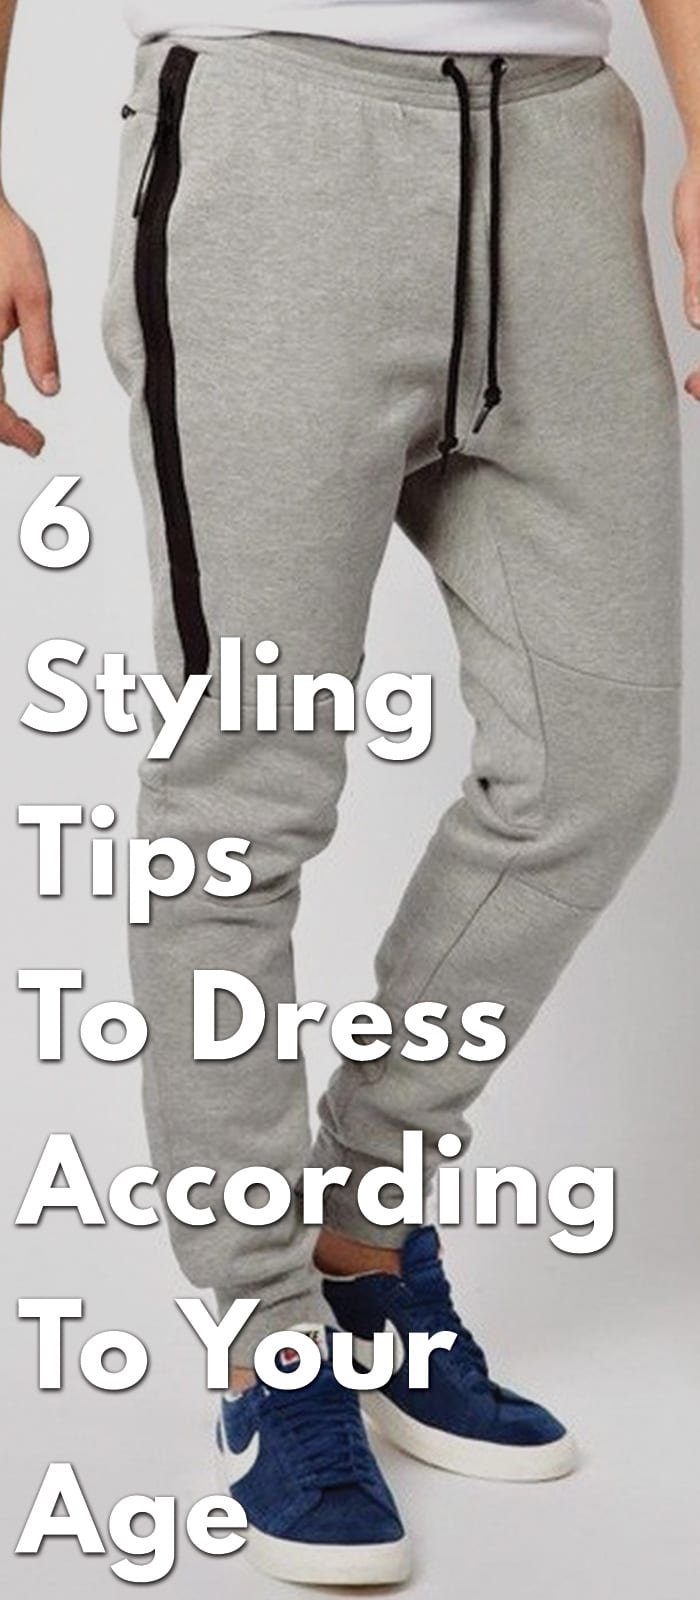 6-Styling-Tips-To-Dress-According-To-Your-Age